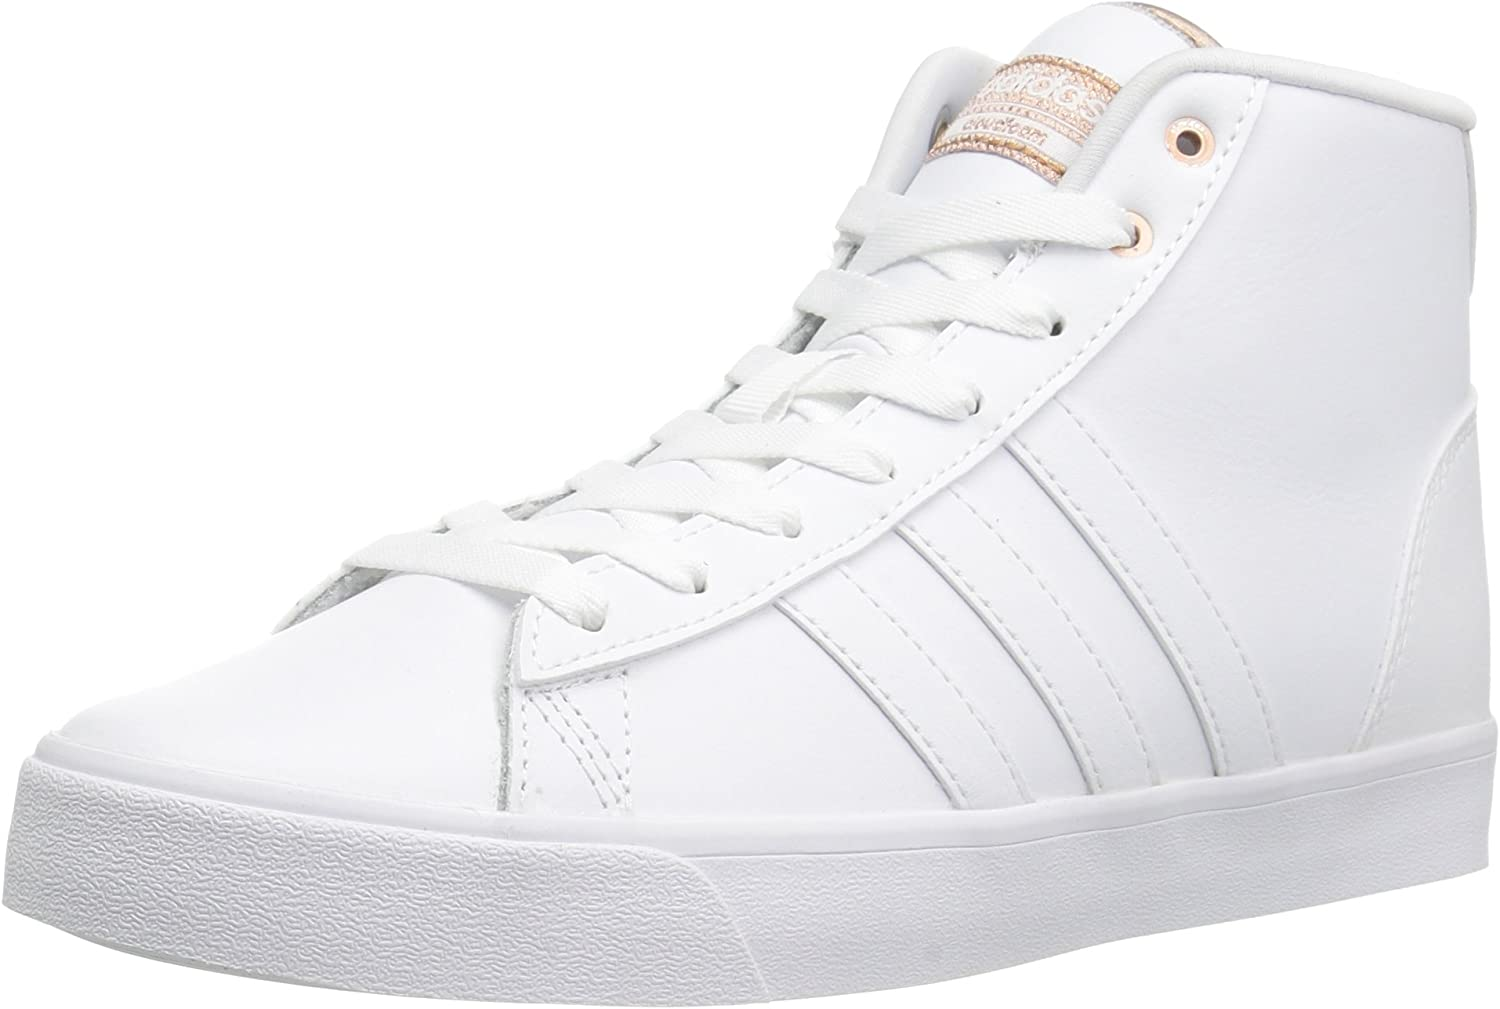 Adidas ORIGINALS Women's Cloudfoam Daily Qt Mid Fashion Sneakers White